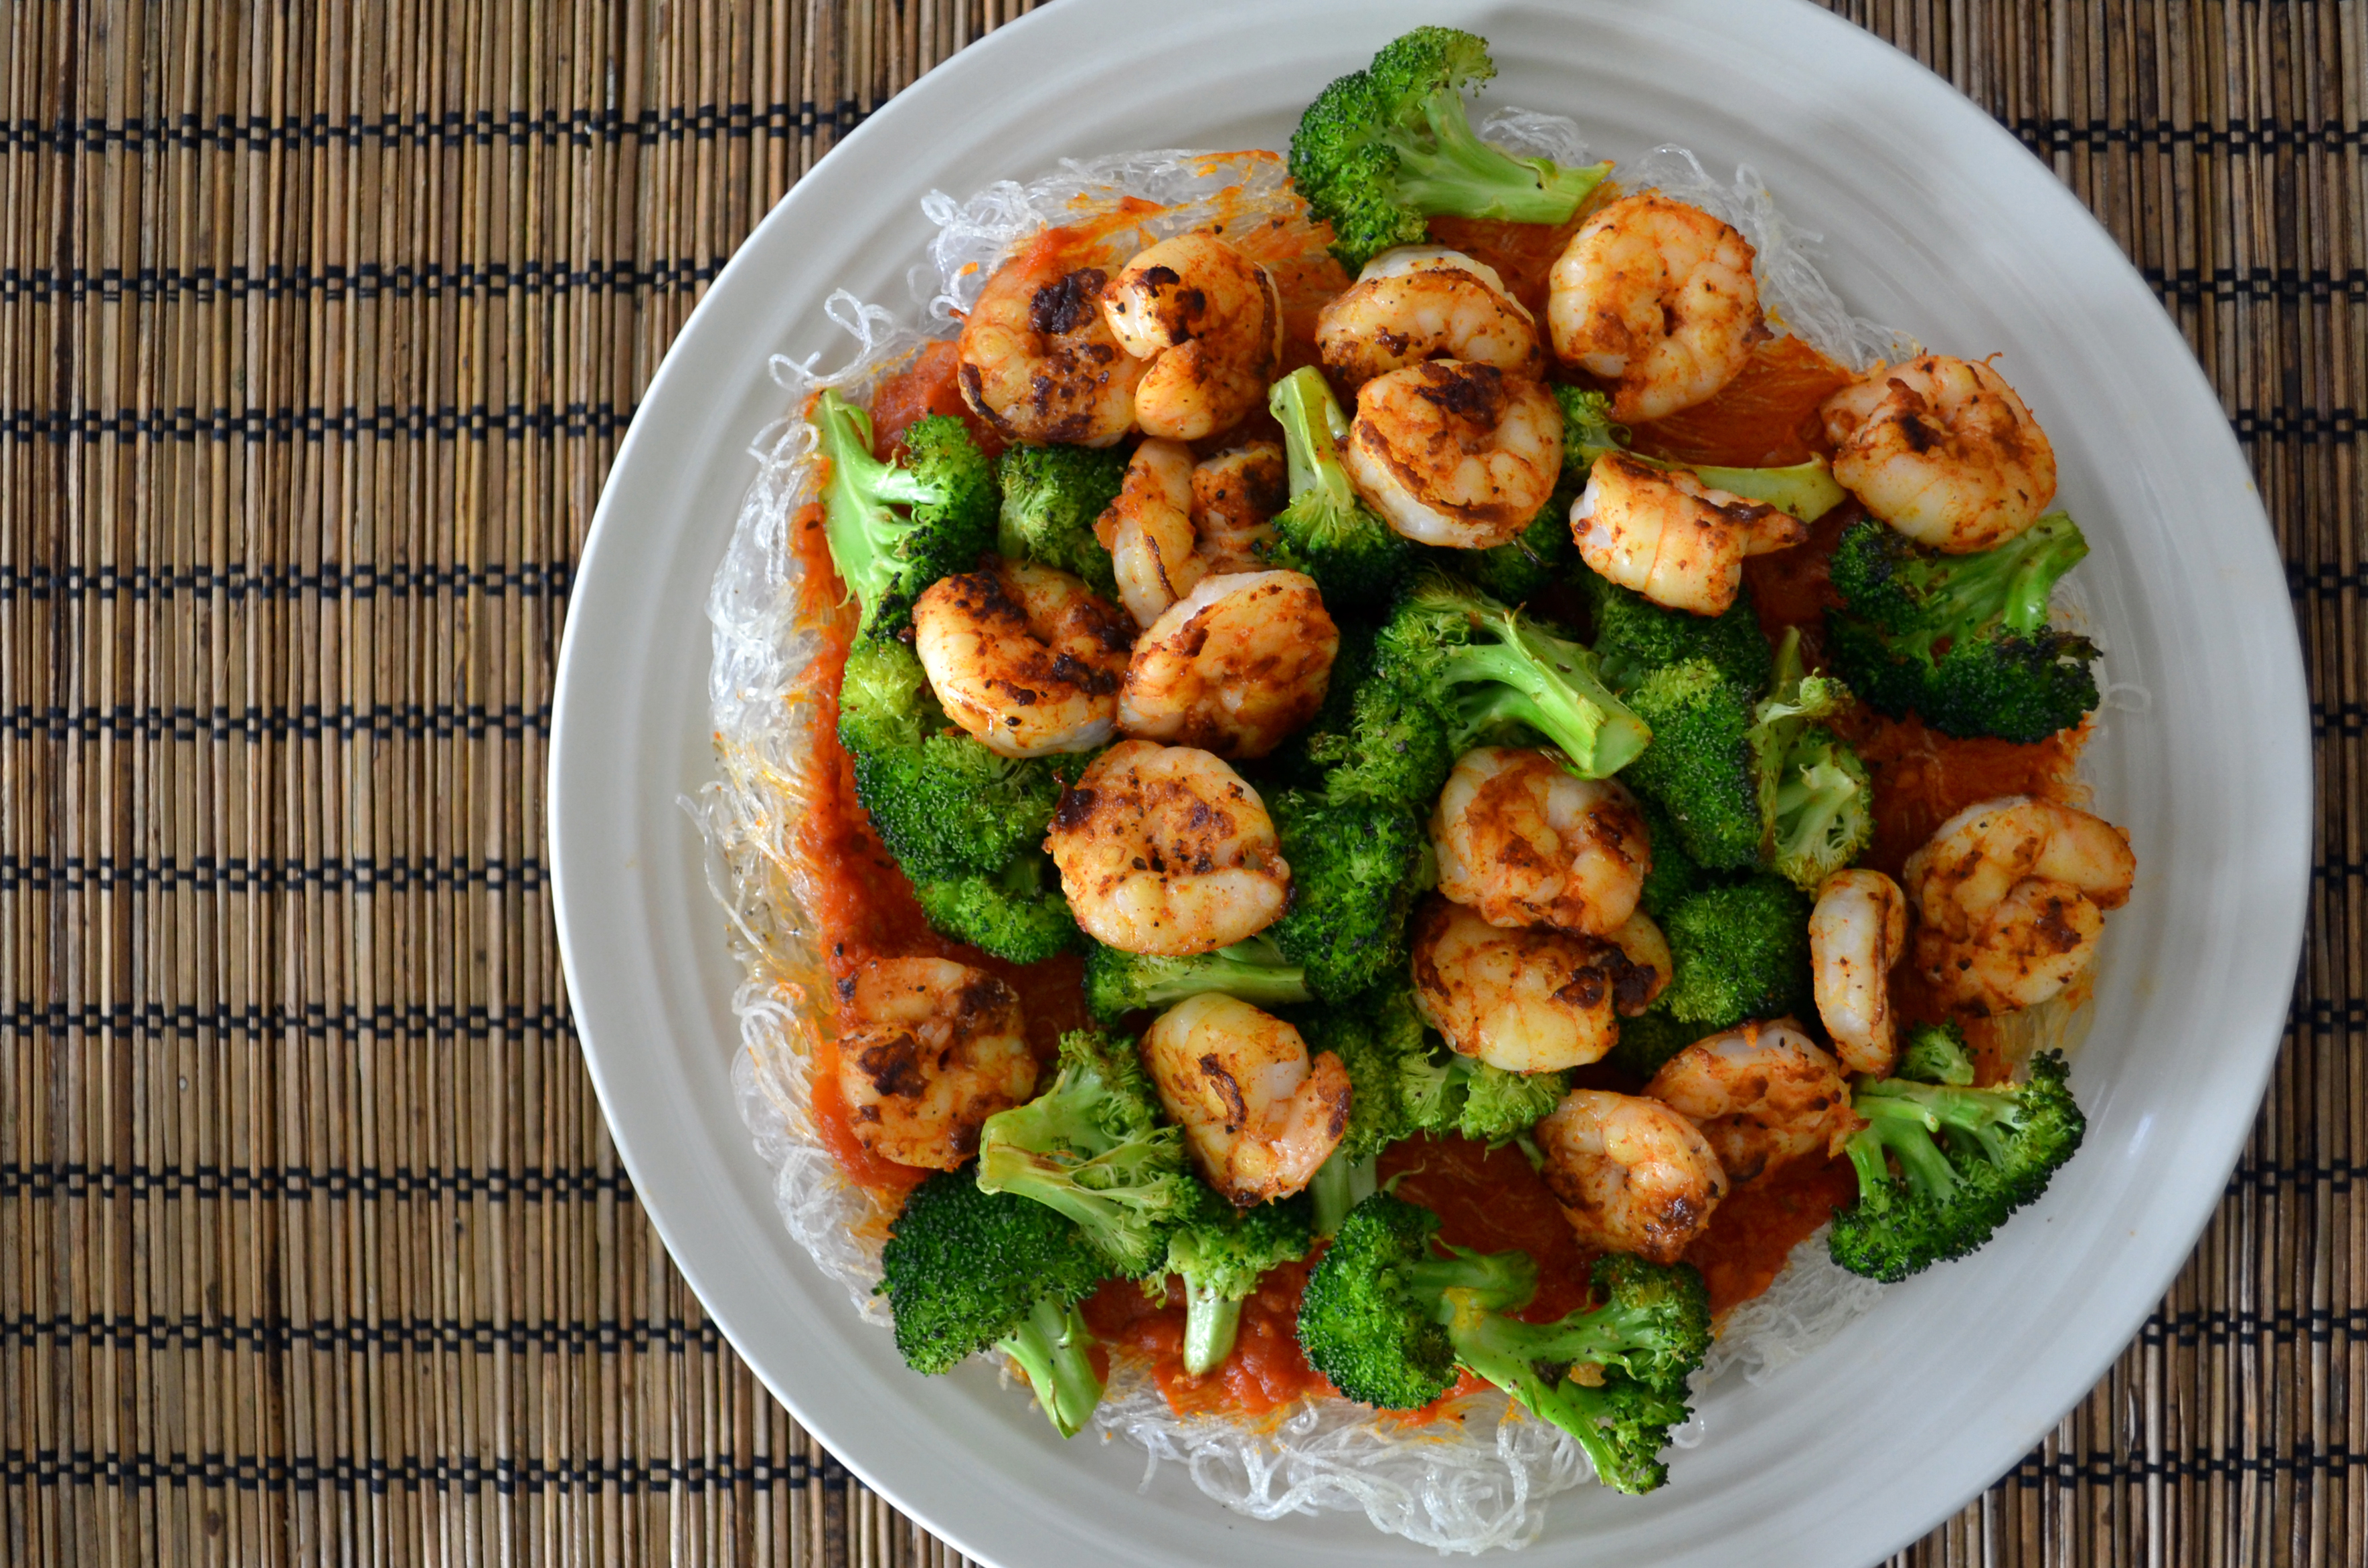 Roasted Broccoli, Shrimp, and Noodles